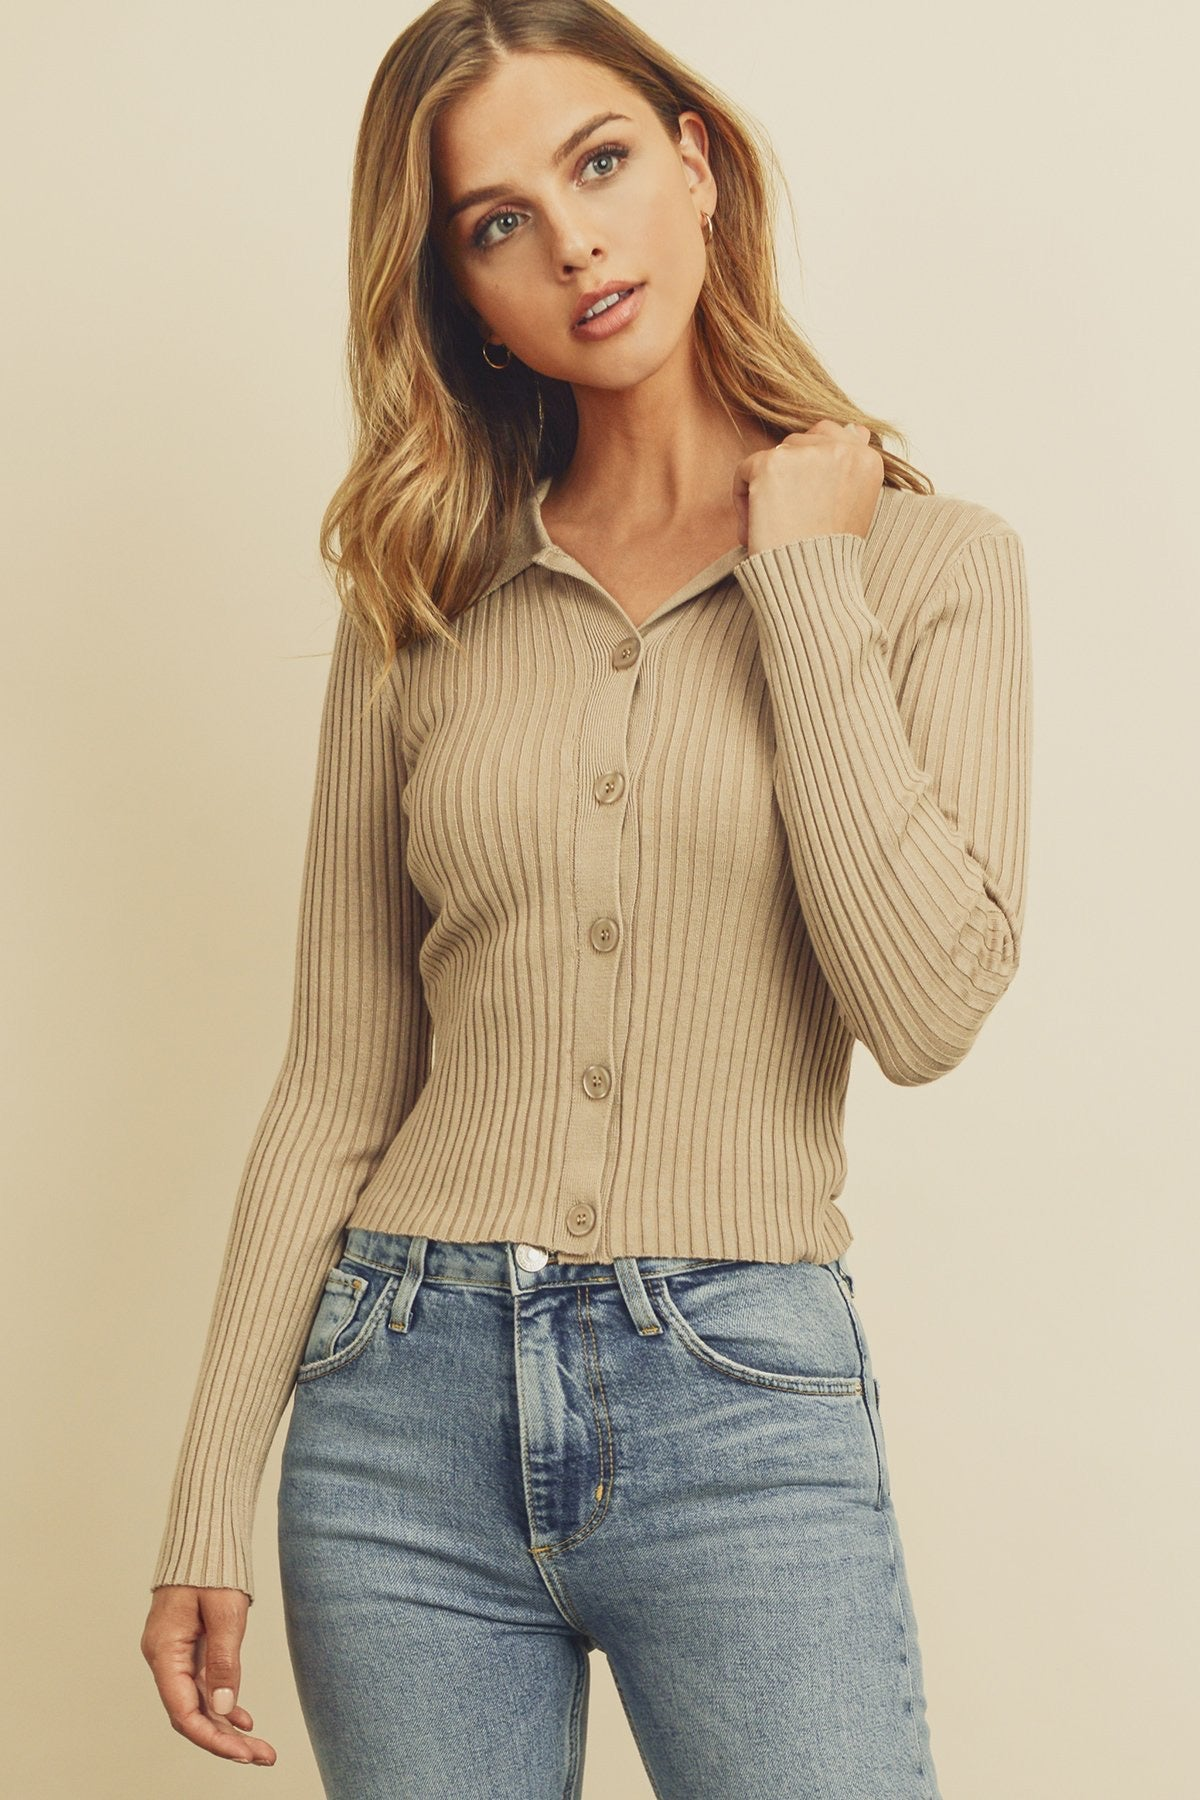 Collared Button Down Knitted Top